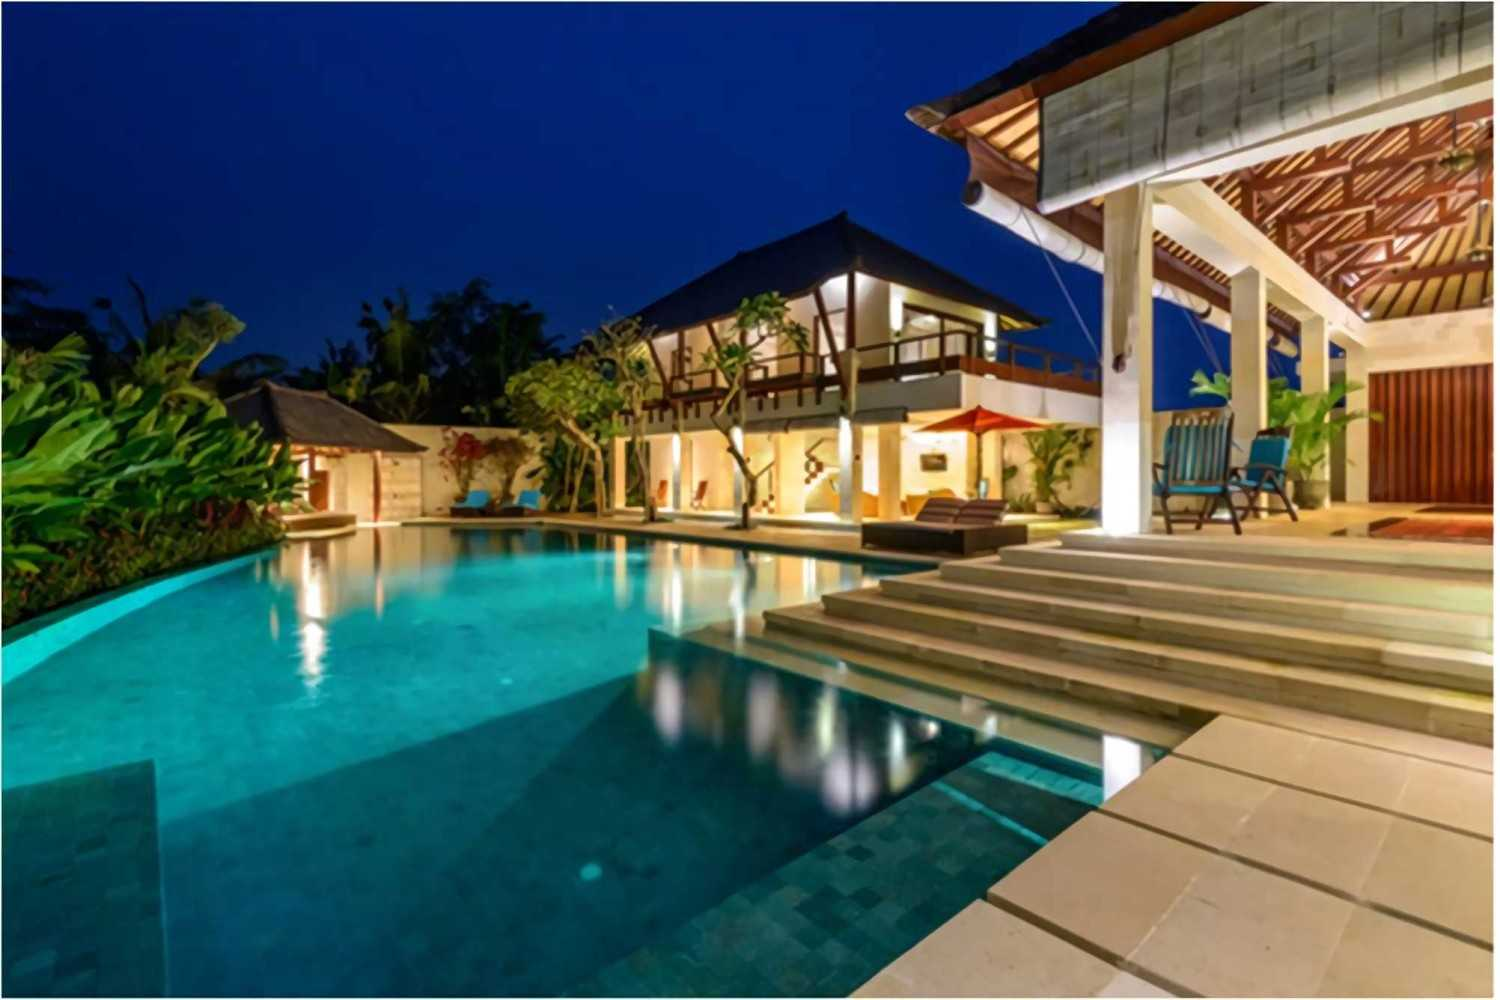 Hg Architects & Designers Associates Villa Saya Canggu, Bali Canggu, Bali Swimming Pool Area  24260